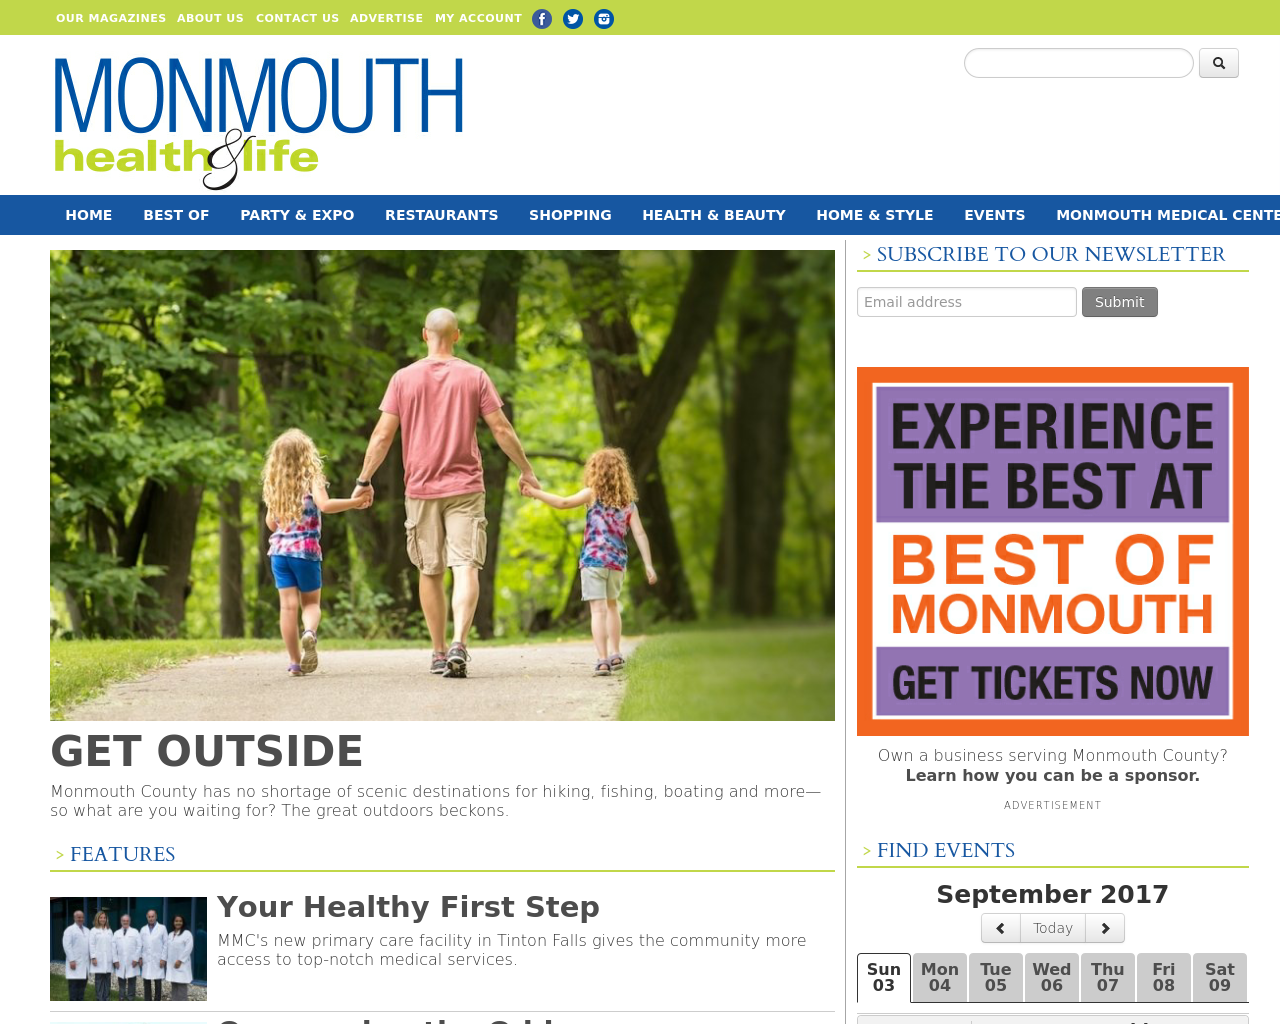 Monmouth-Health-&-Life-Advertising-Reviews-Pricing